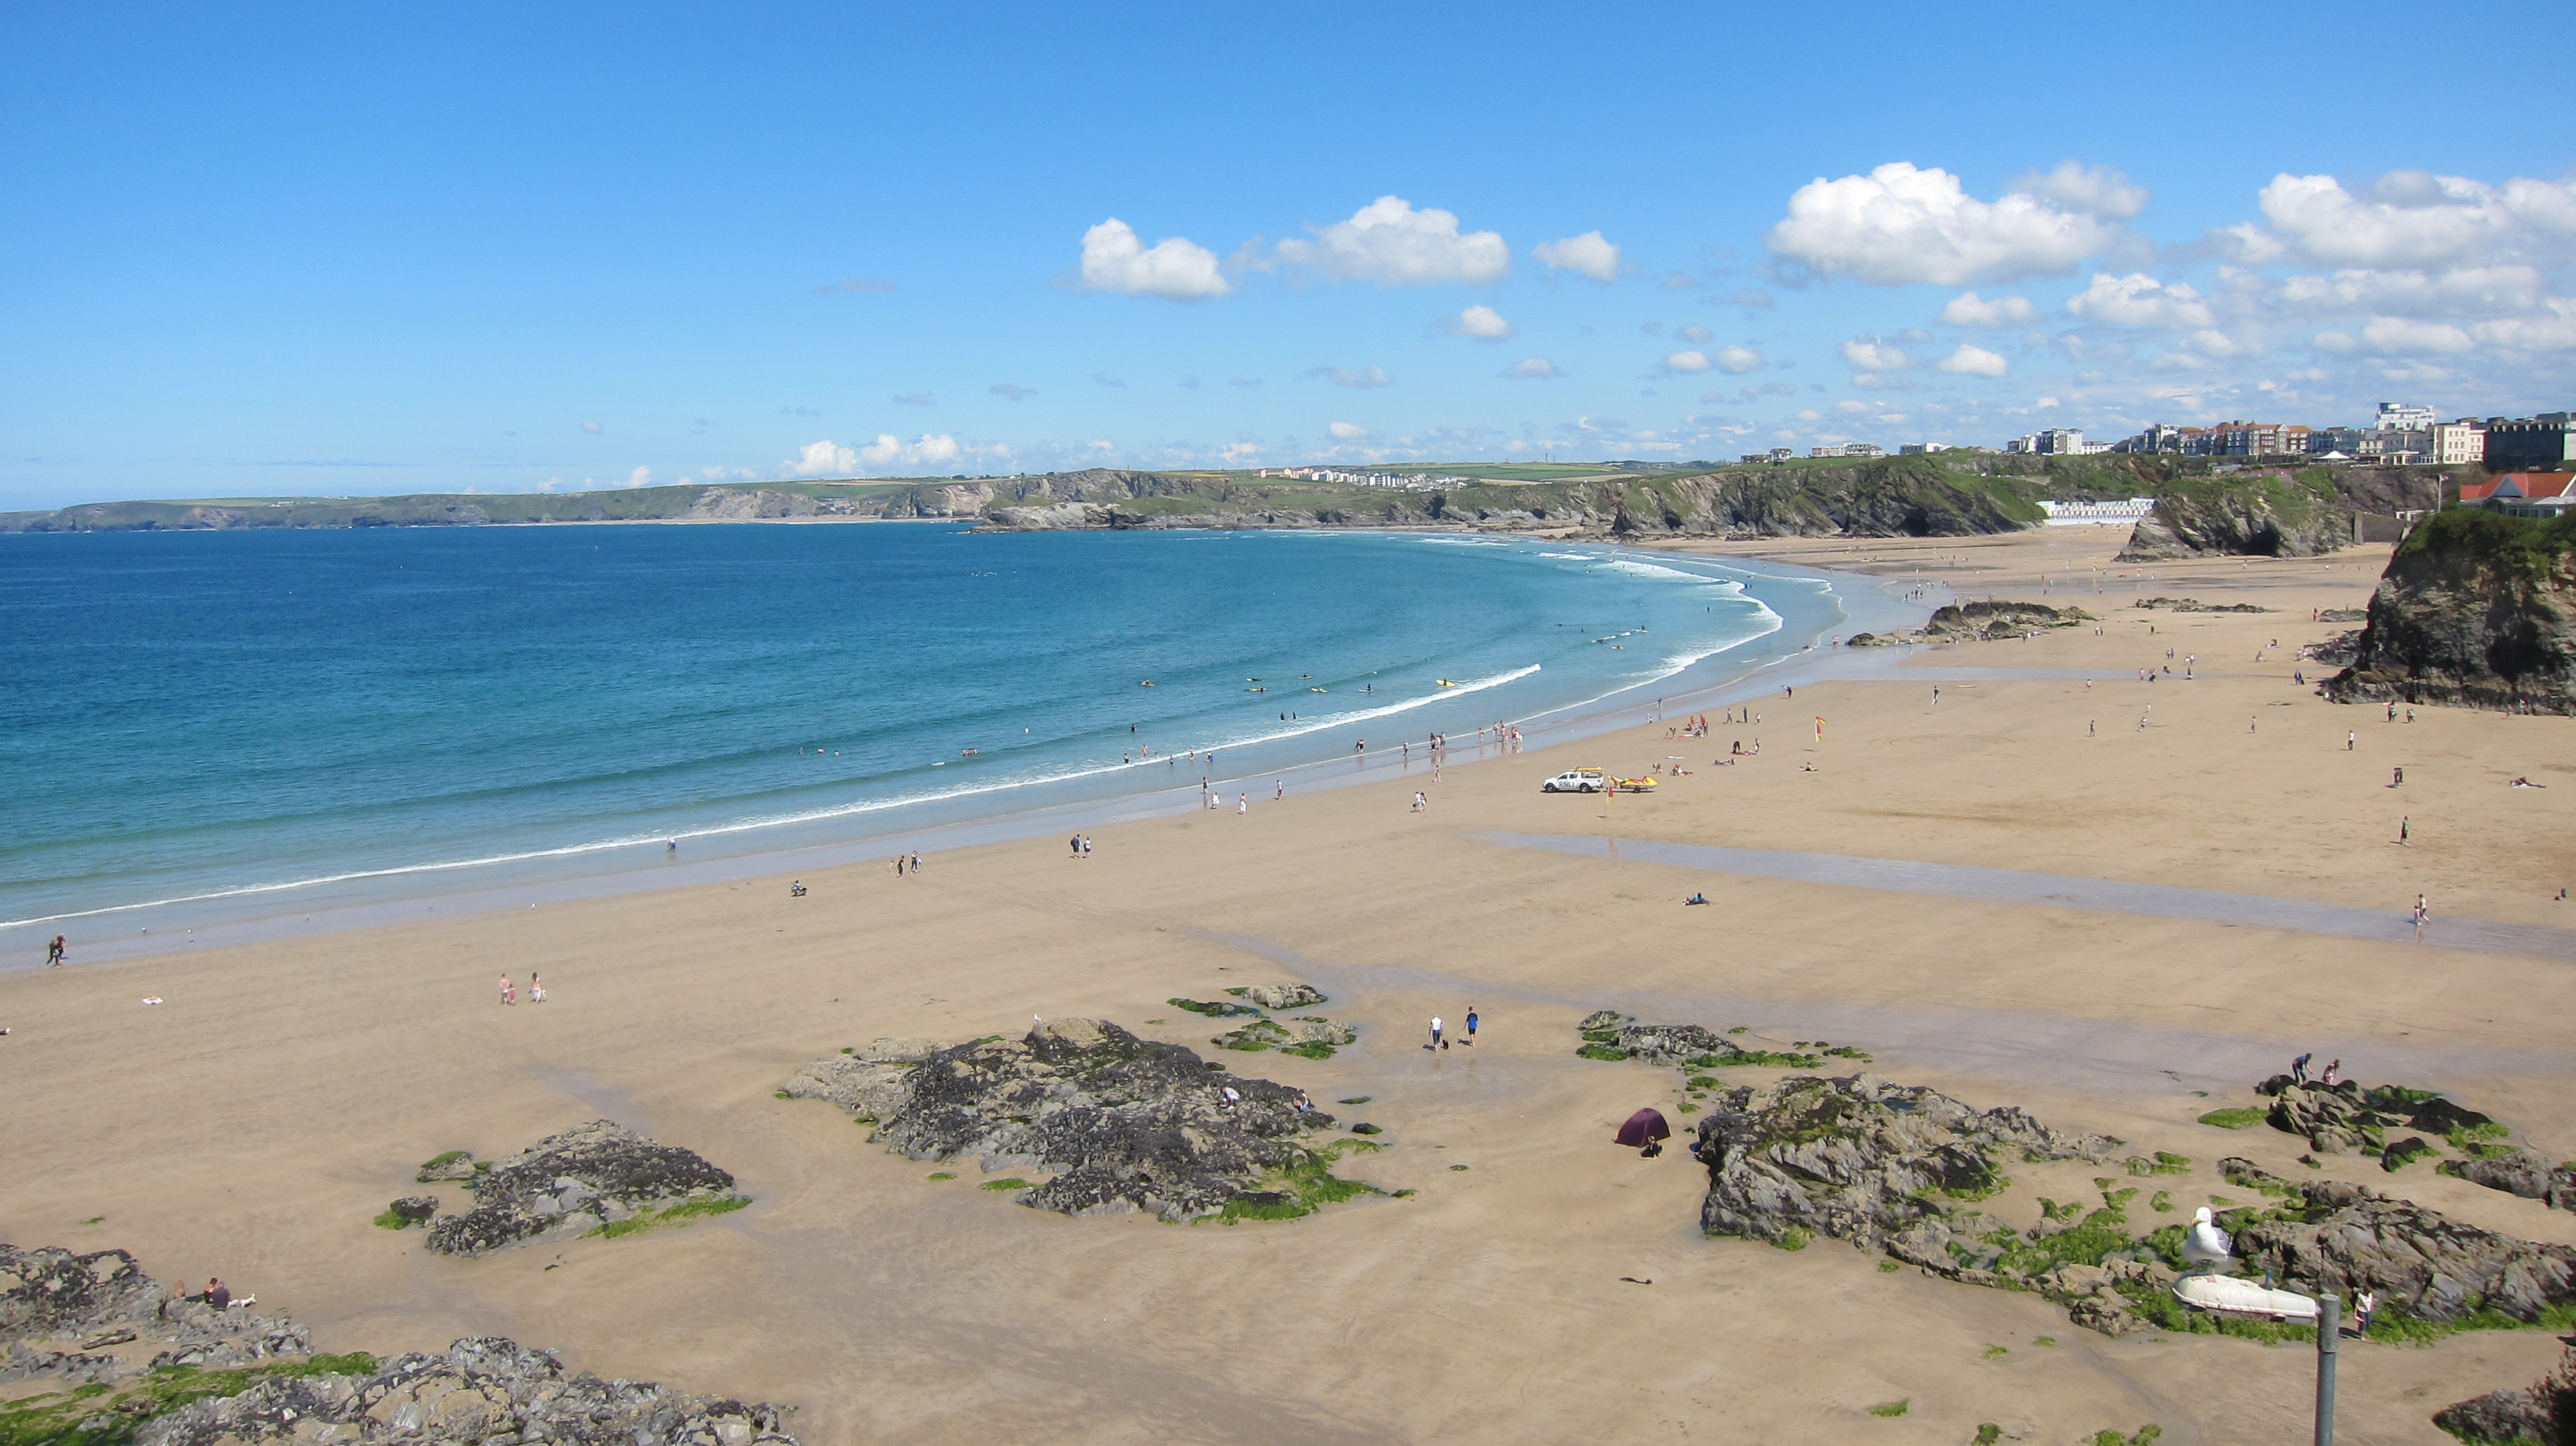 dating in newquay cornwall The stylish headland hotel in newquay, cornwall, with dog friendly 5 star private cottages set on an exclusive clifftop overlooking fistral beach the headland is.